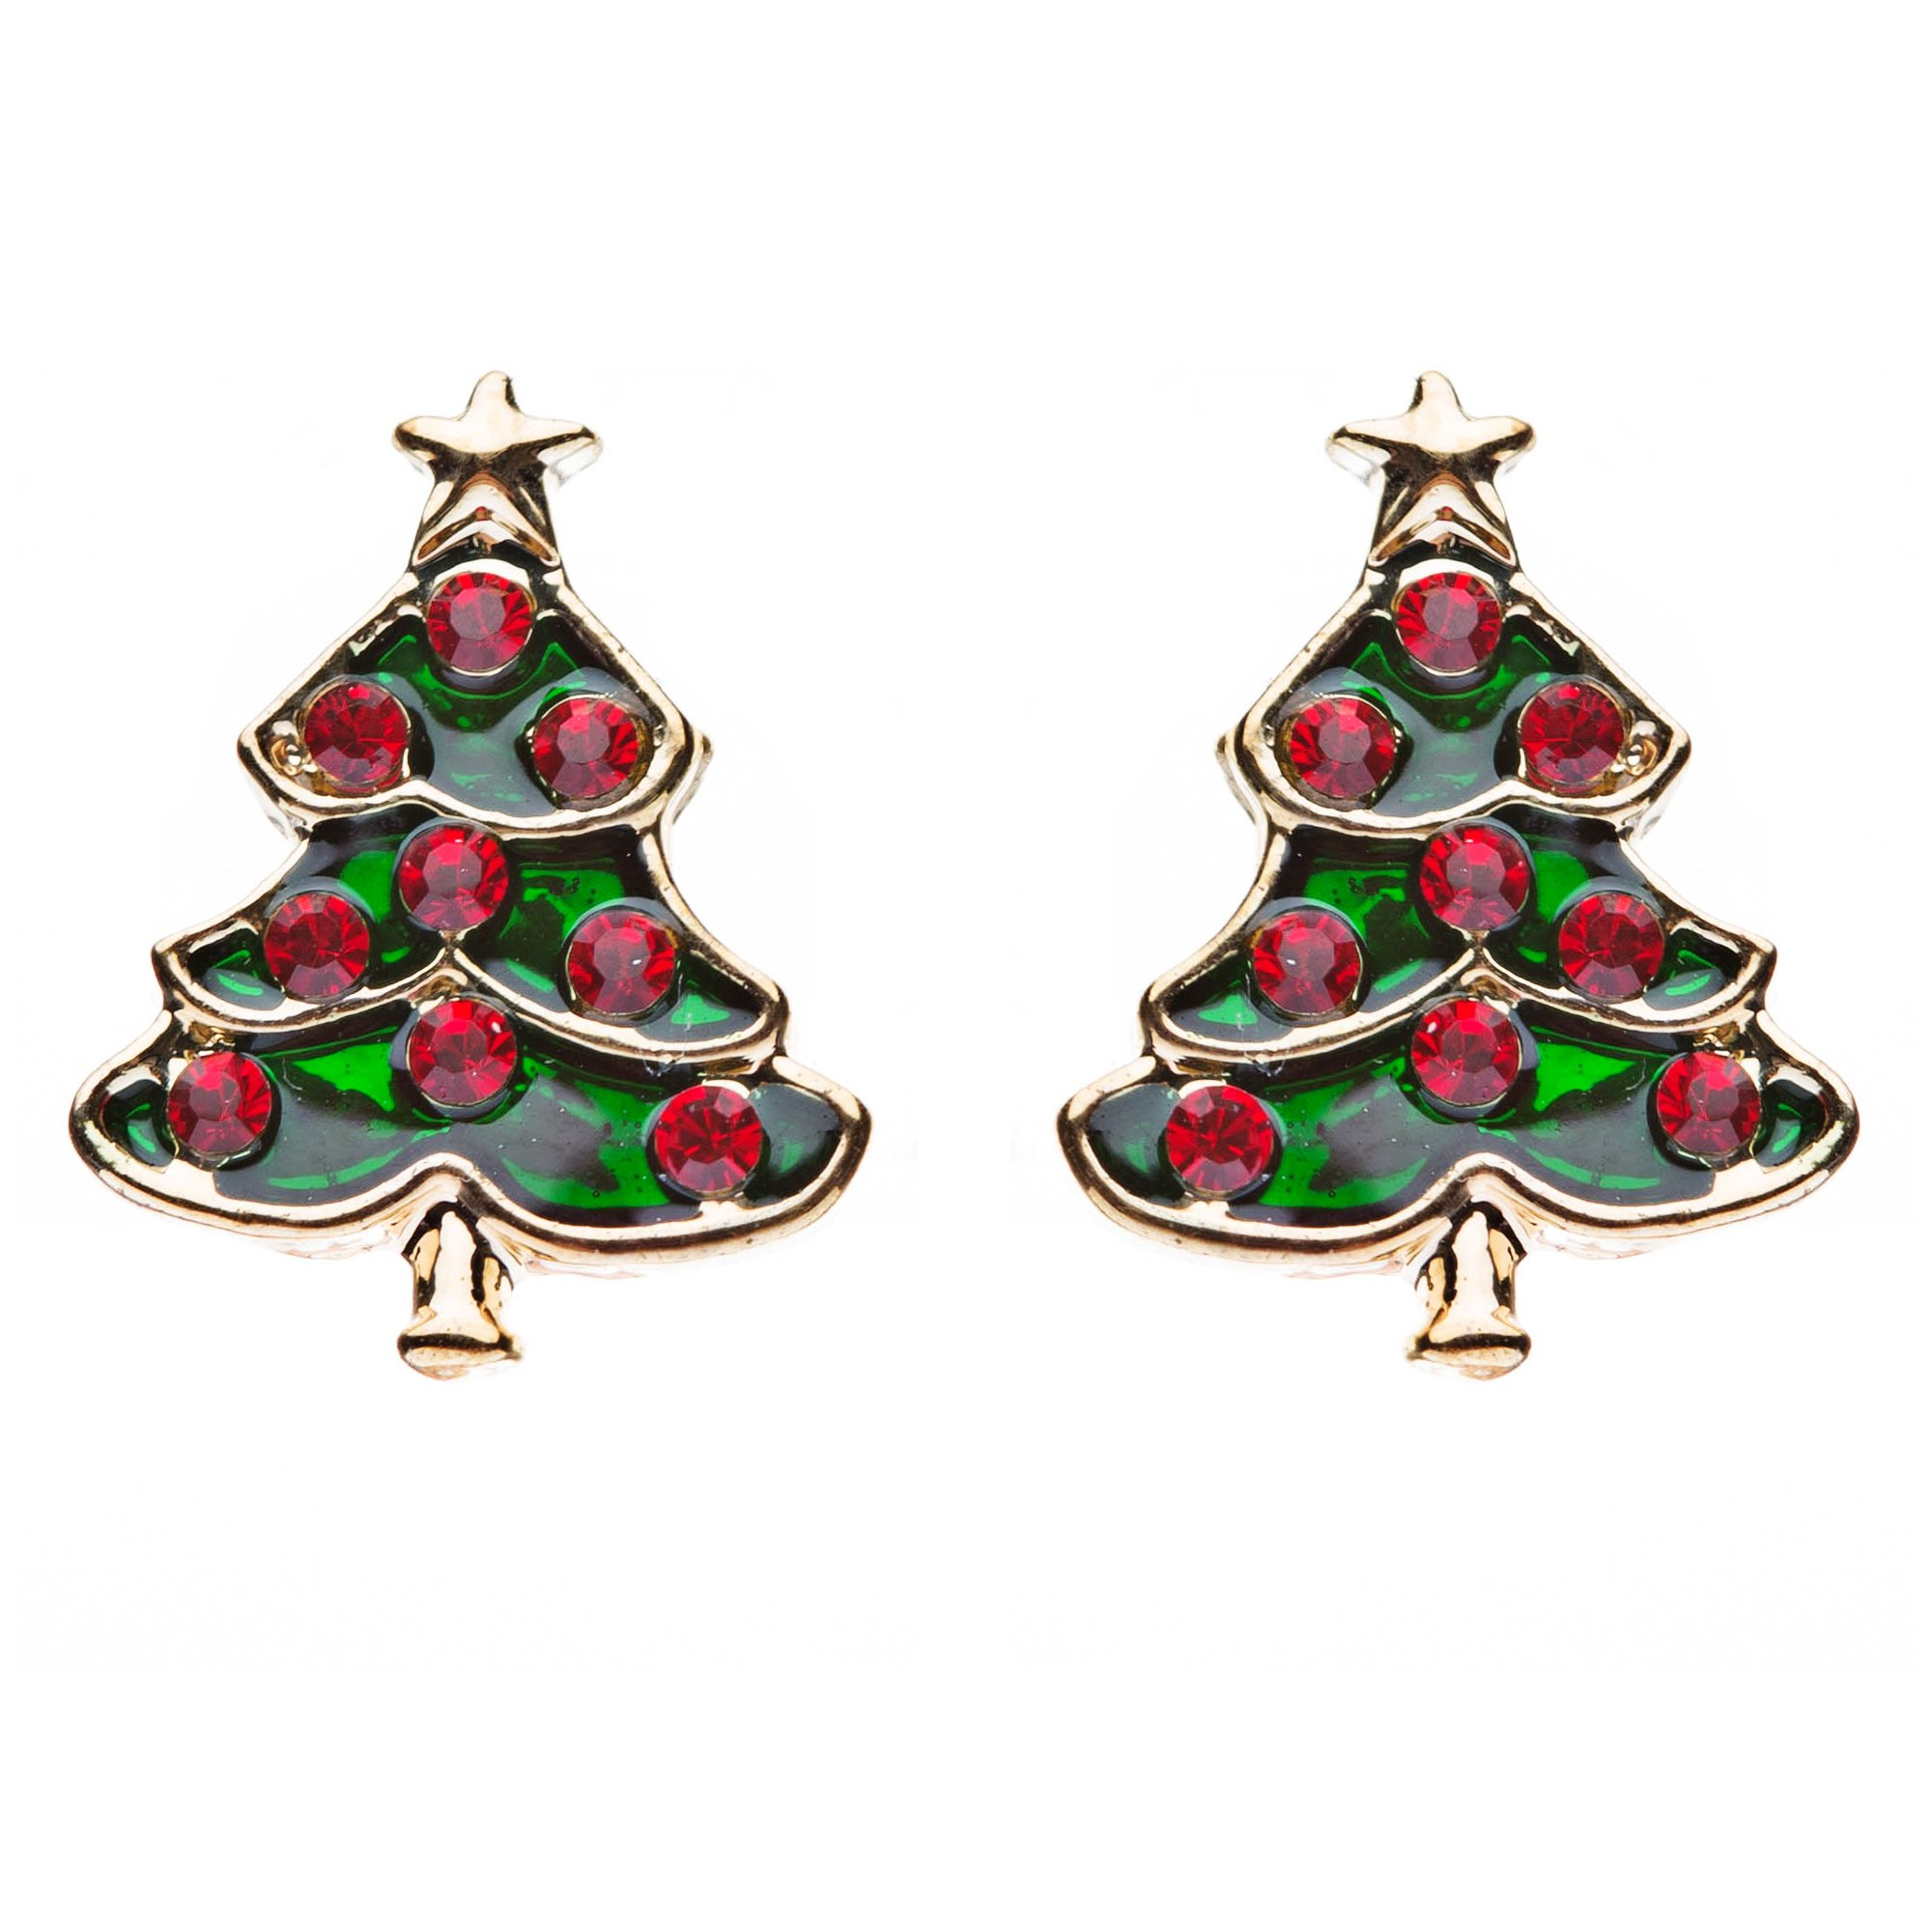 ACCESSORIESFOREVER Christmas Jewelry Crystal Rhinestone Adorable Tree Small Earrings E647 Red